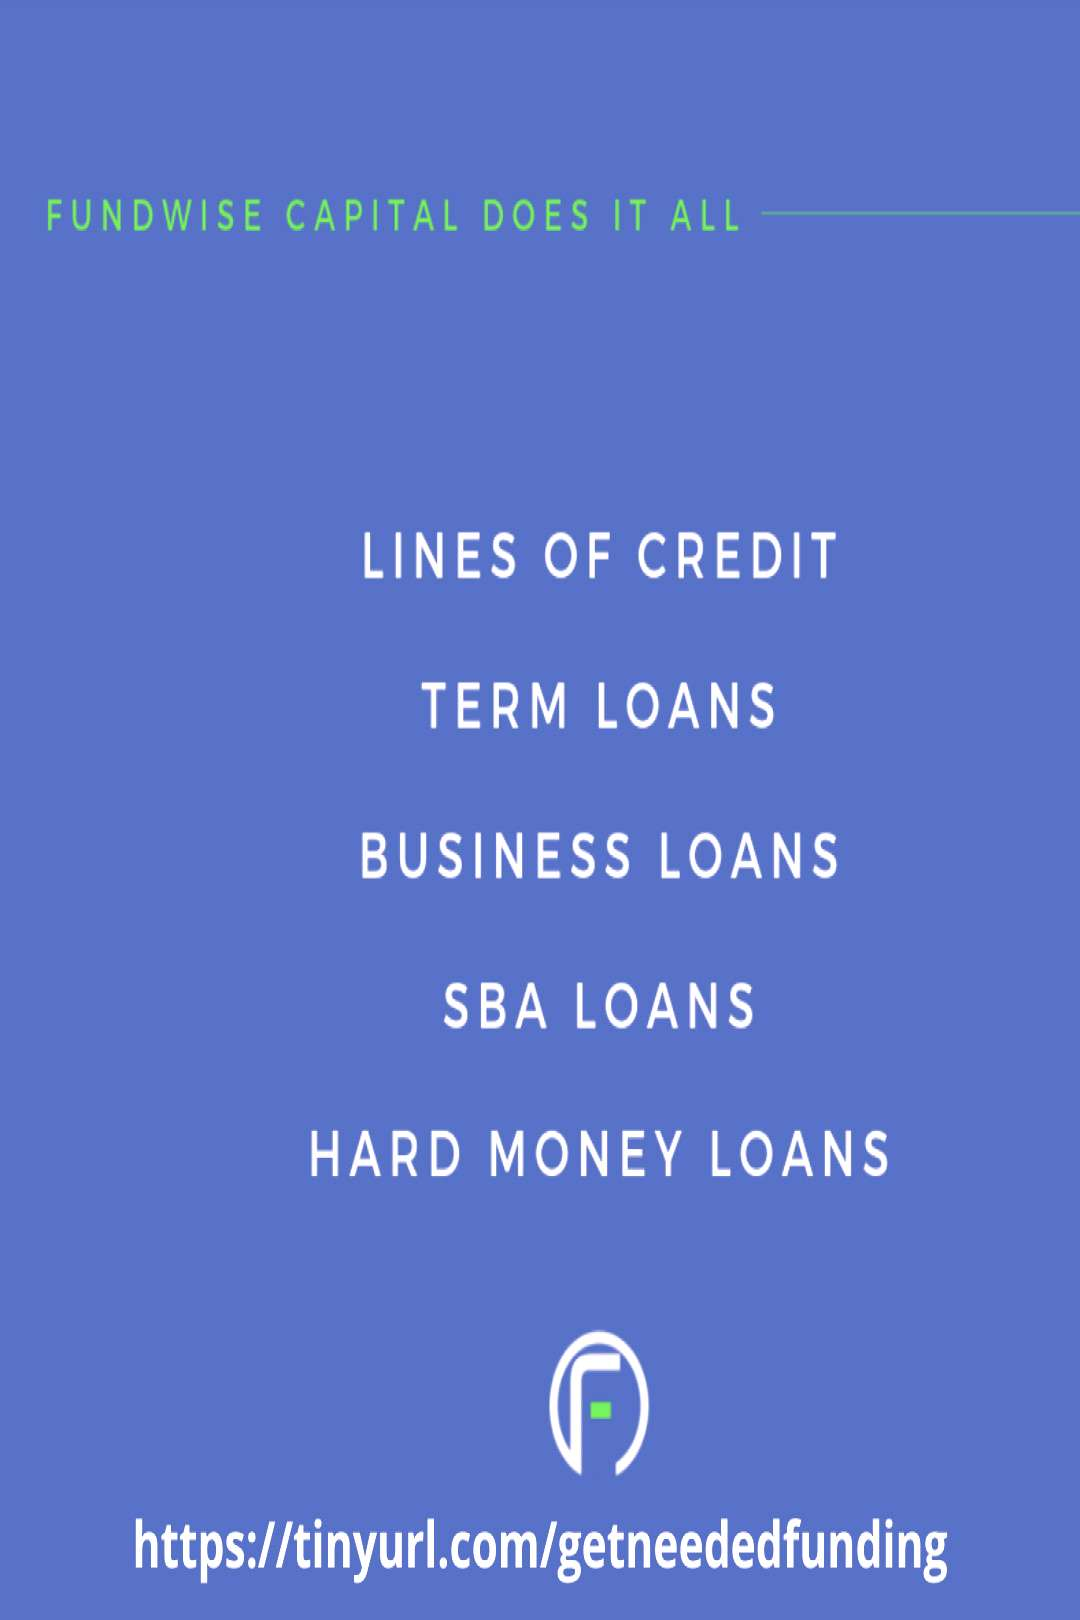 Waiting on the Relief Loan? Up to $500,000 for your business  line of credit 0% interest up to 12mo